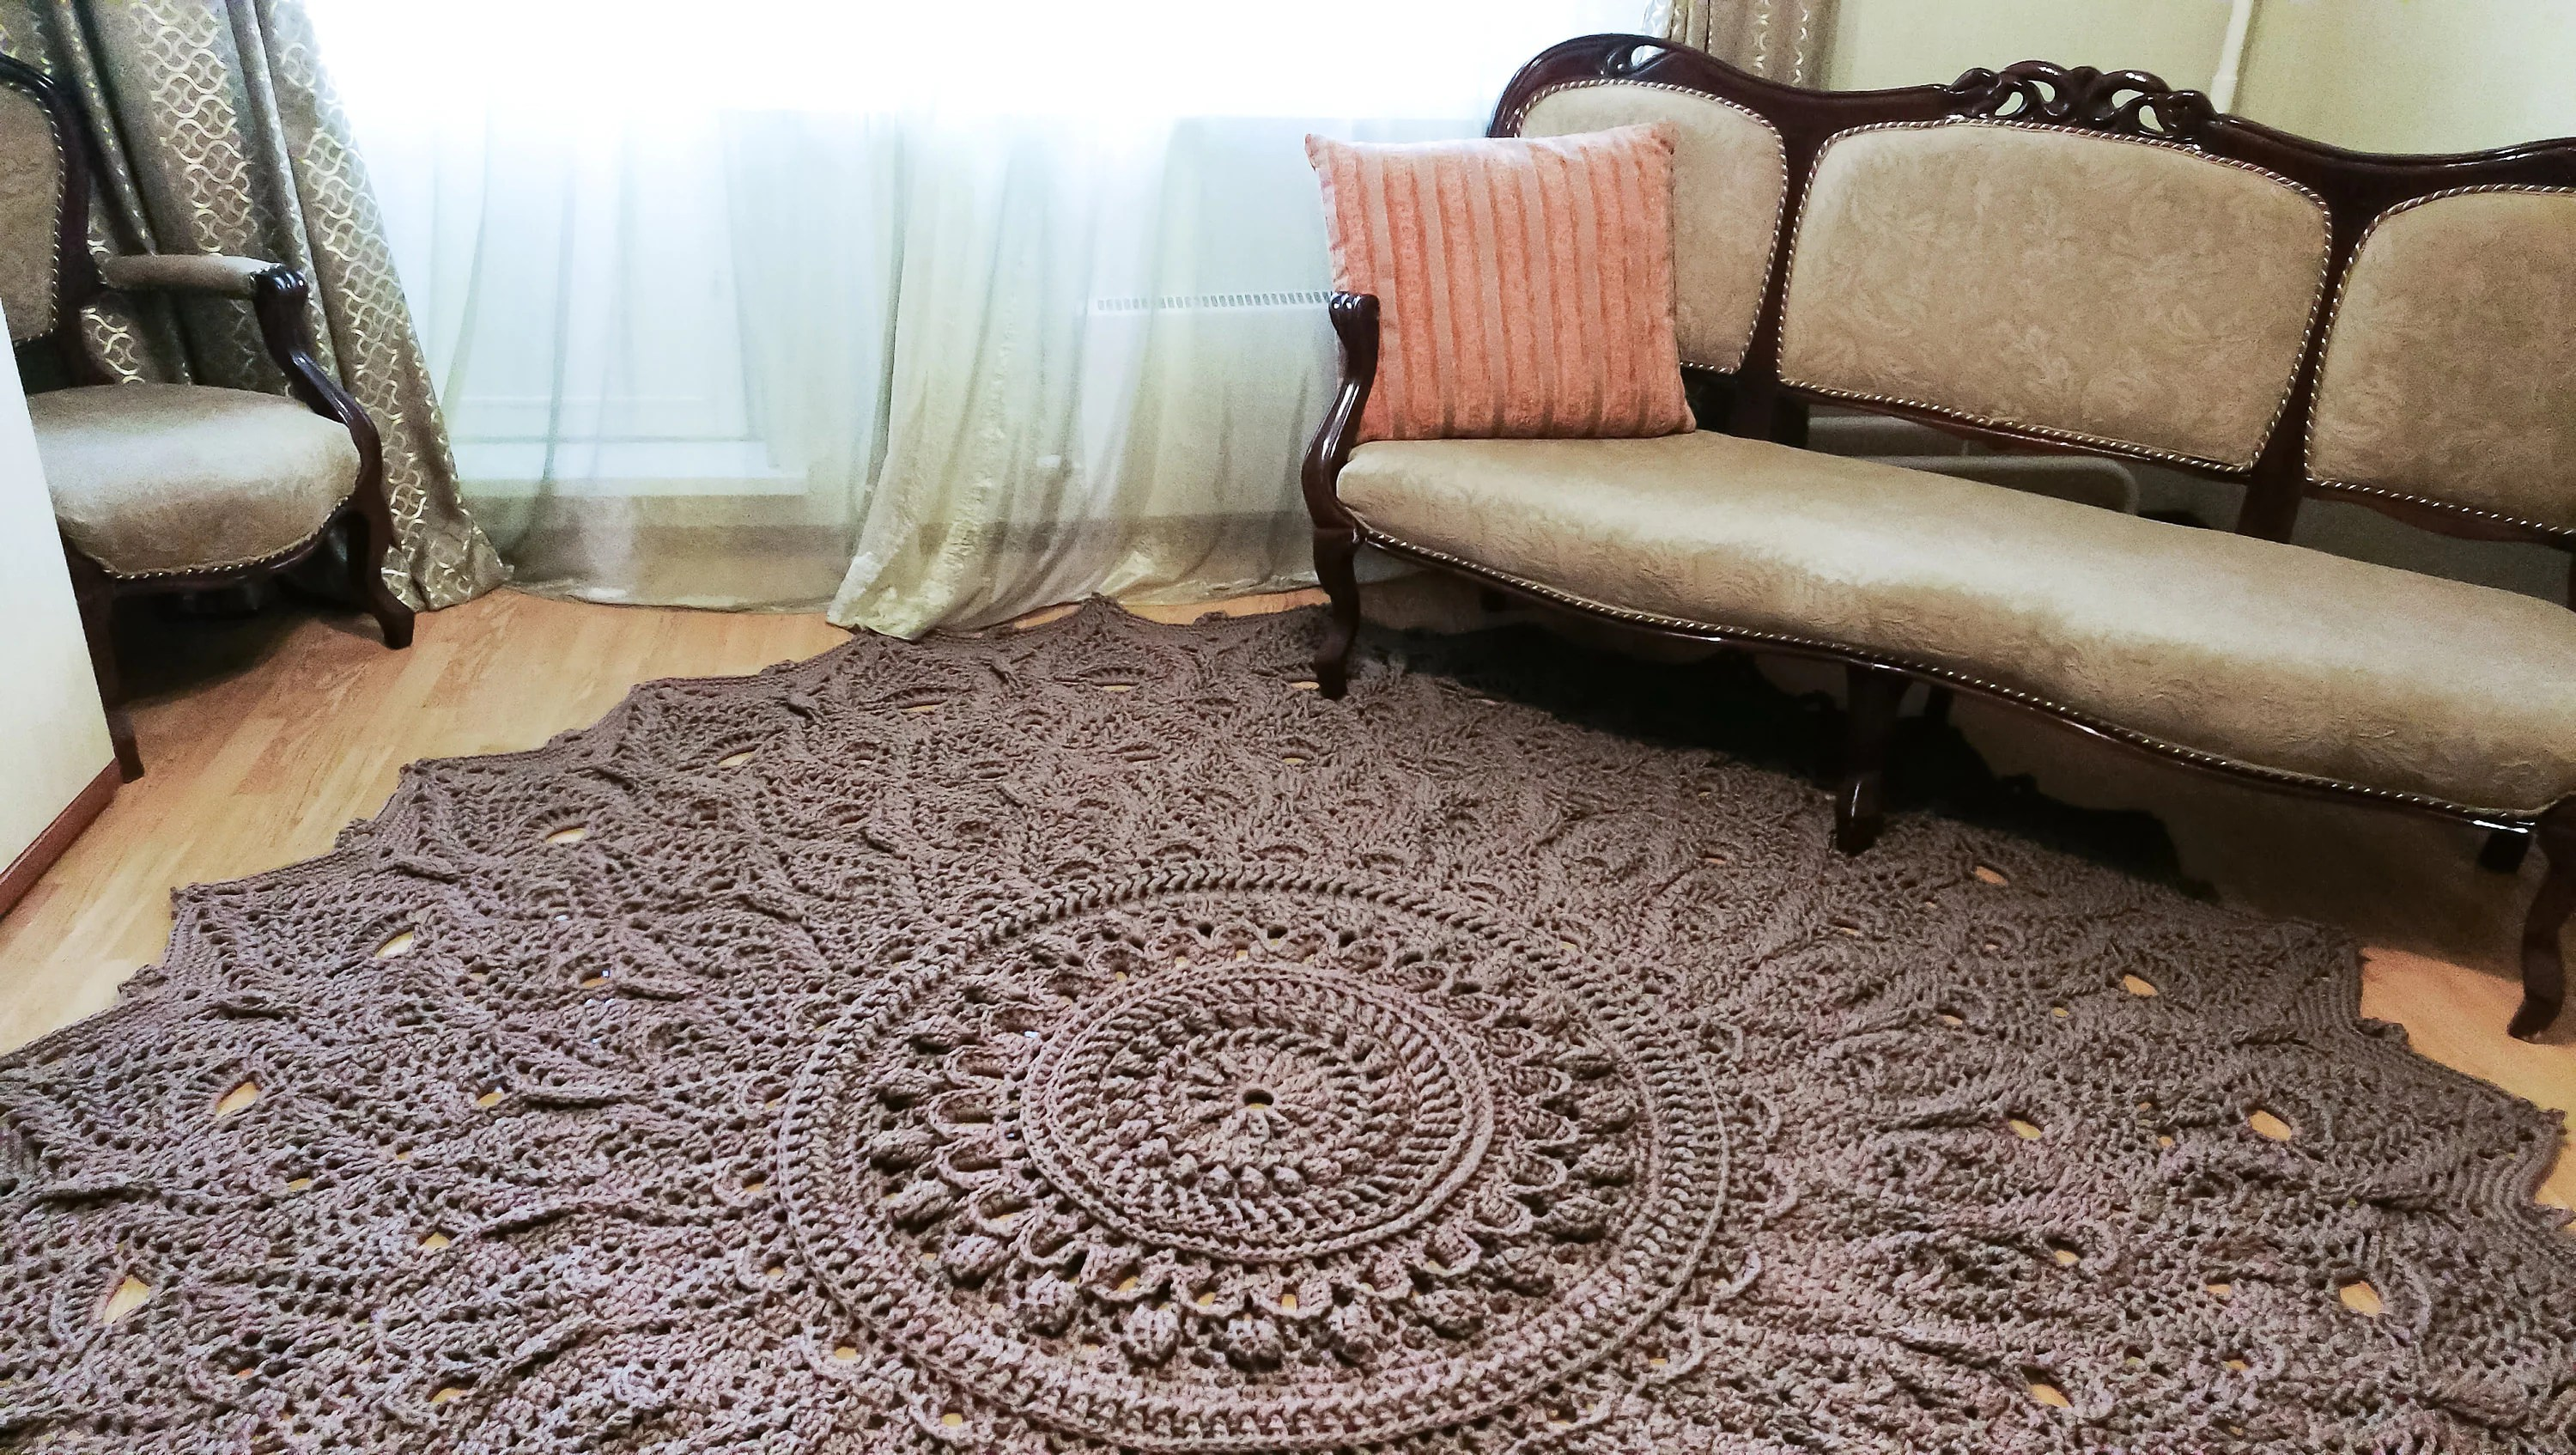 Big Crochet Rug Round Area Rug 118 In Doily Rug Yarn Lace Mat Cottage Nursery Carpet Rustic Floor Decor By Lacemats Laceastermax